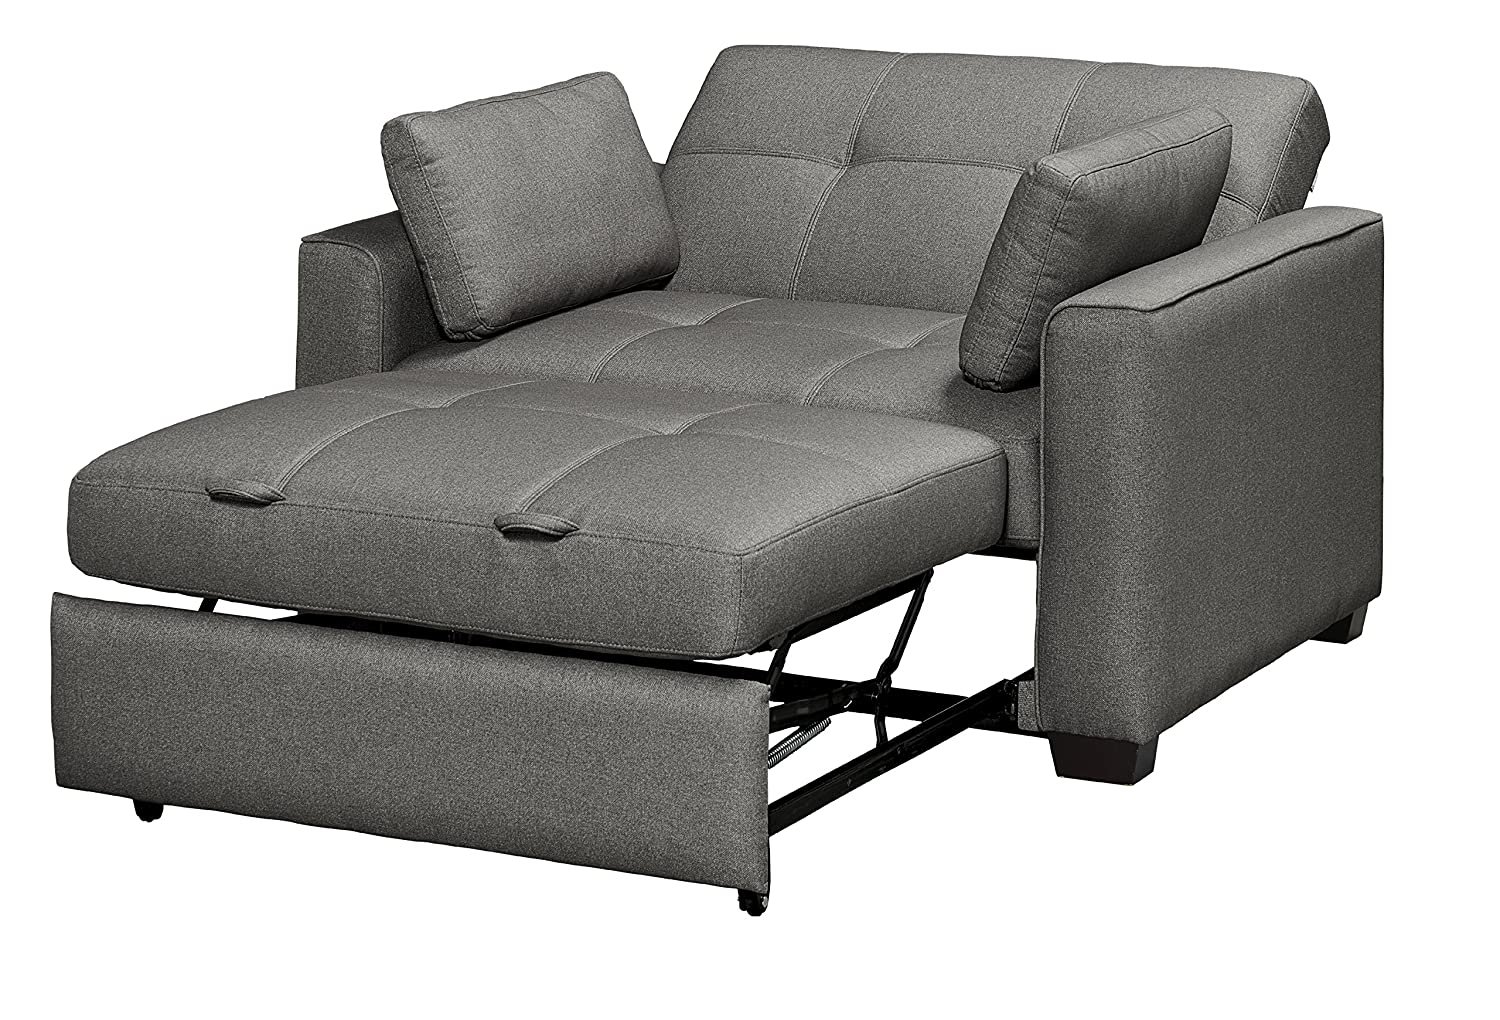 Mechali Products Furniture Serta Sofa Sleeper Convertible into Lounger/Love seat/Bed - Twin, Full & Queen Sizes - Moon Grey Color (Twin)